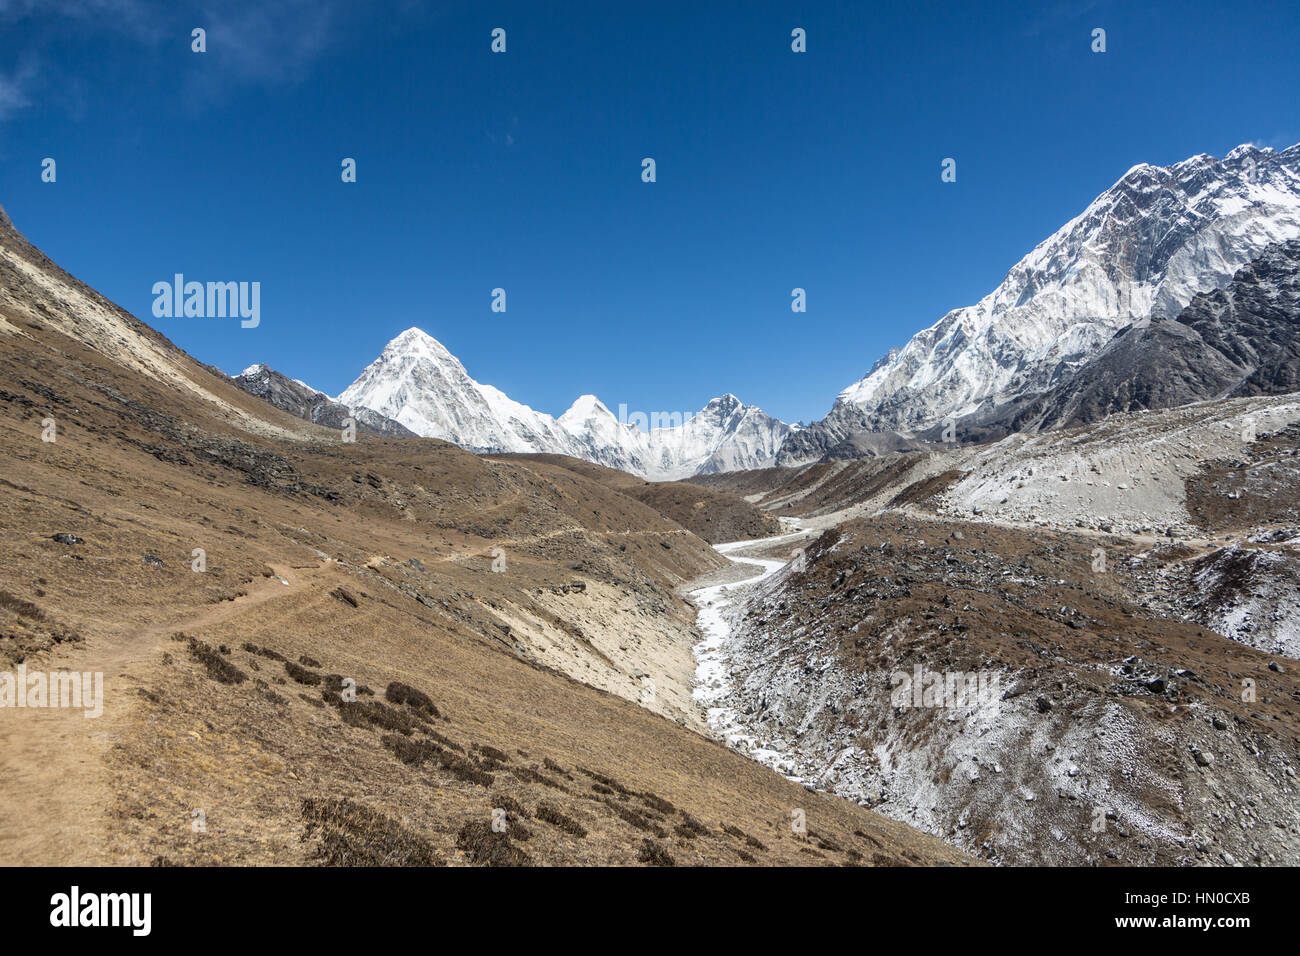 Hiking trail leading to Mt Everest base camp from the Cho La pass in the Khumbu region of the Himalays in Nepal - Stock Image